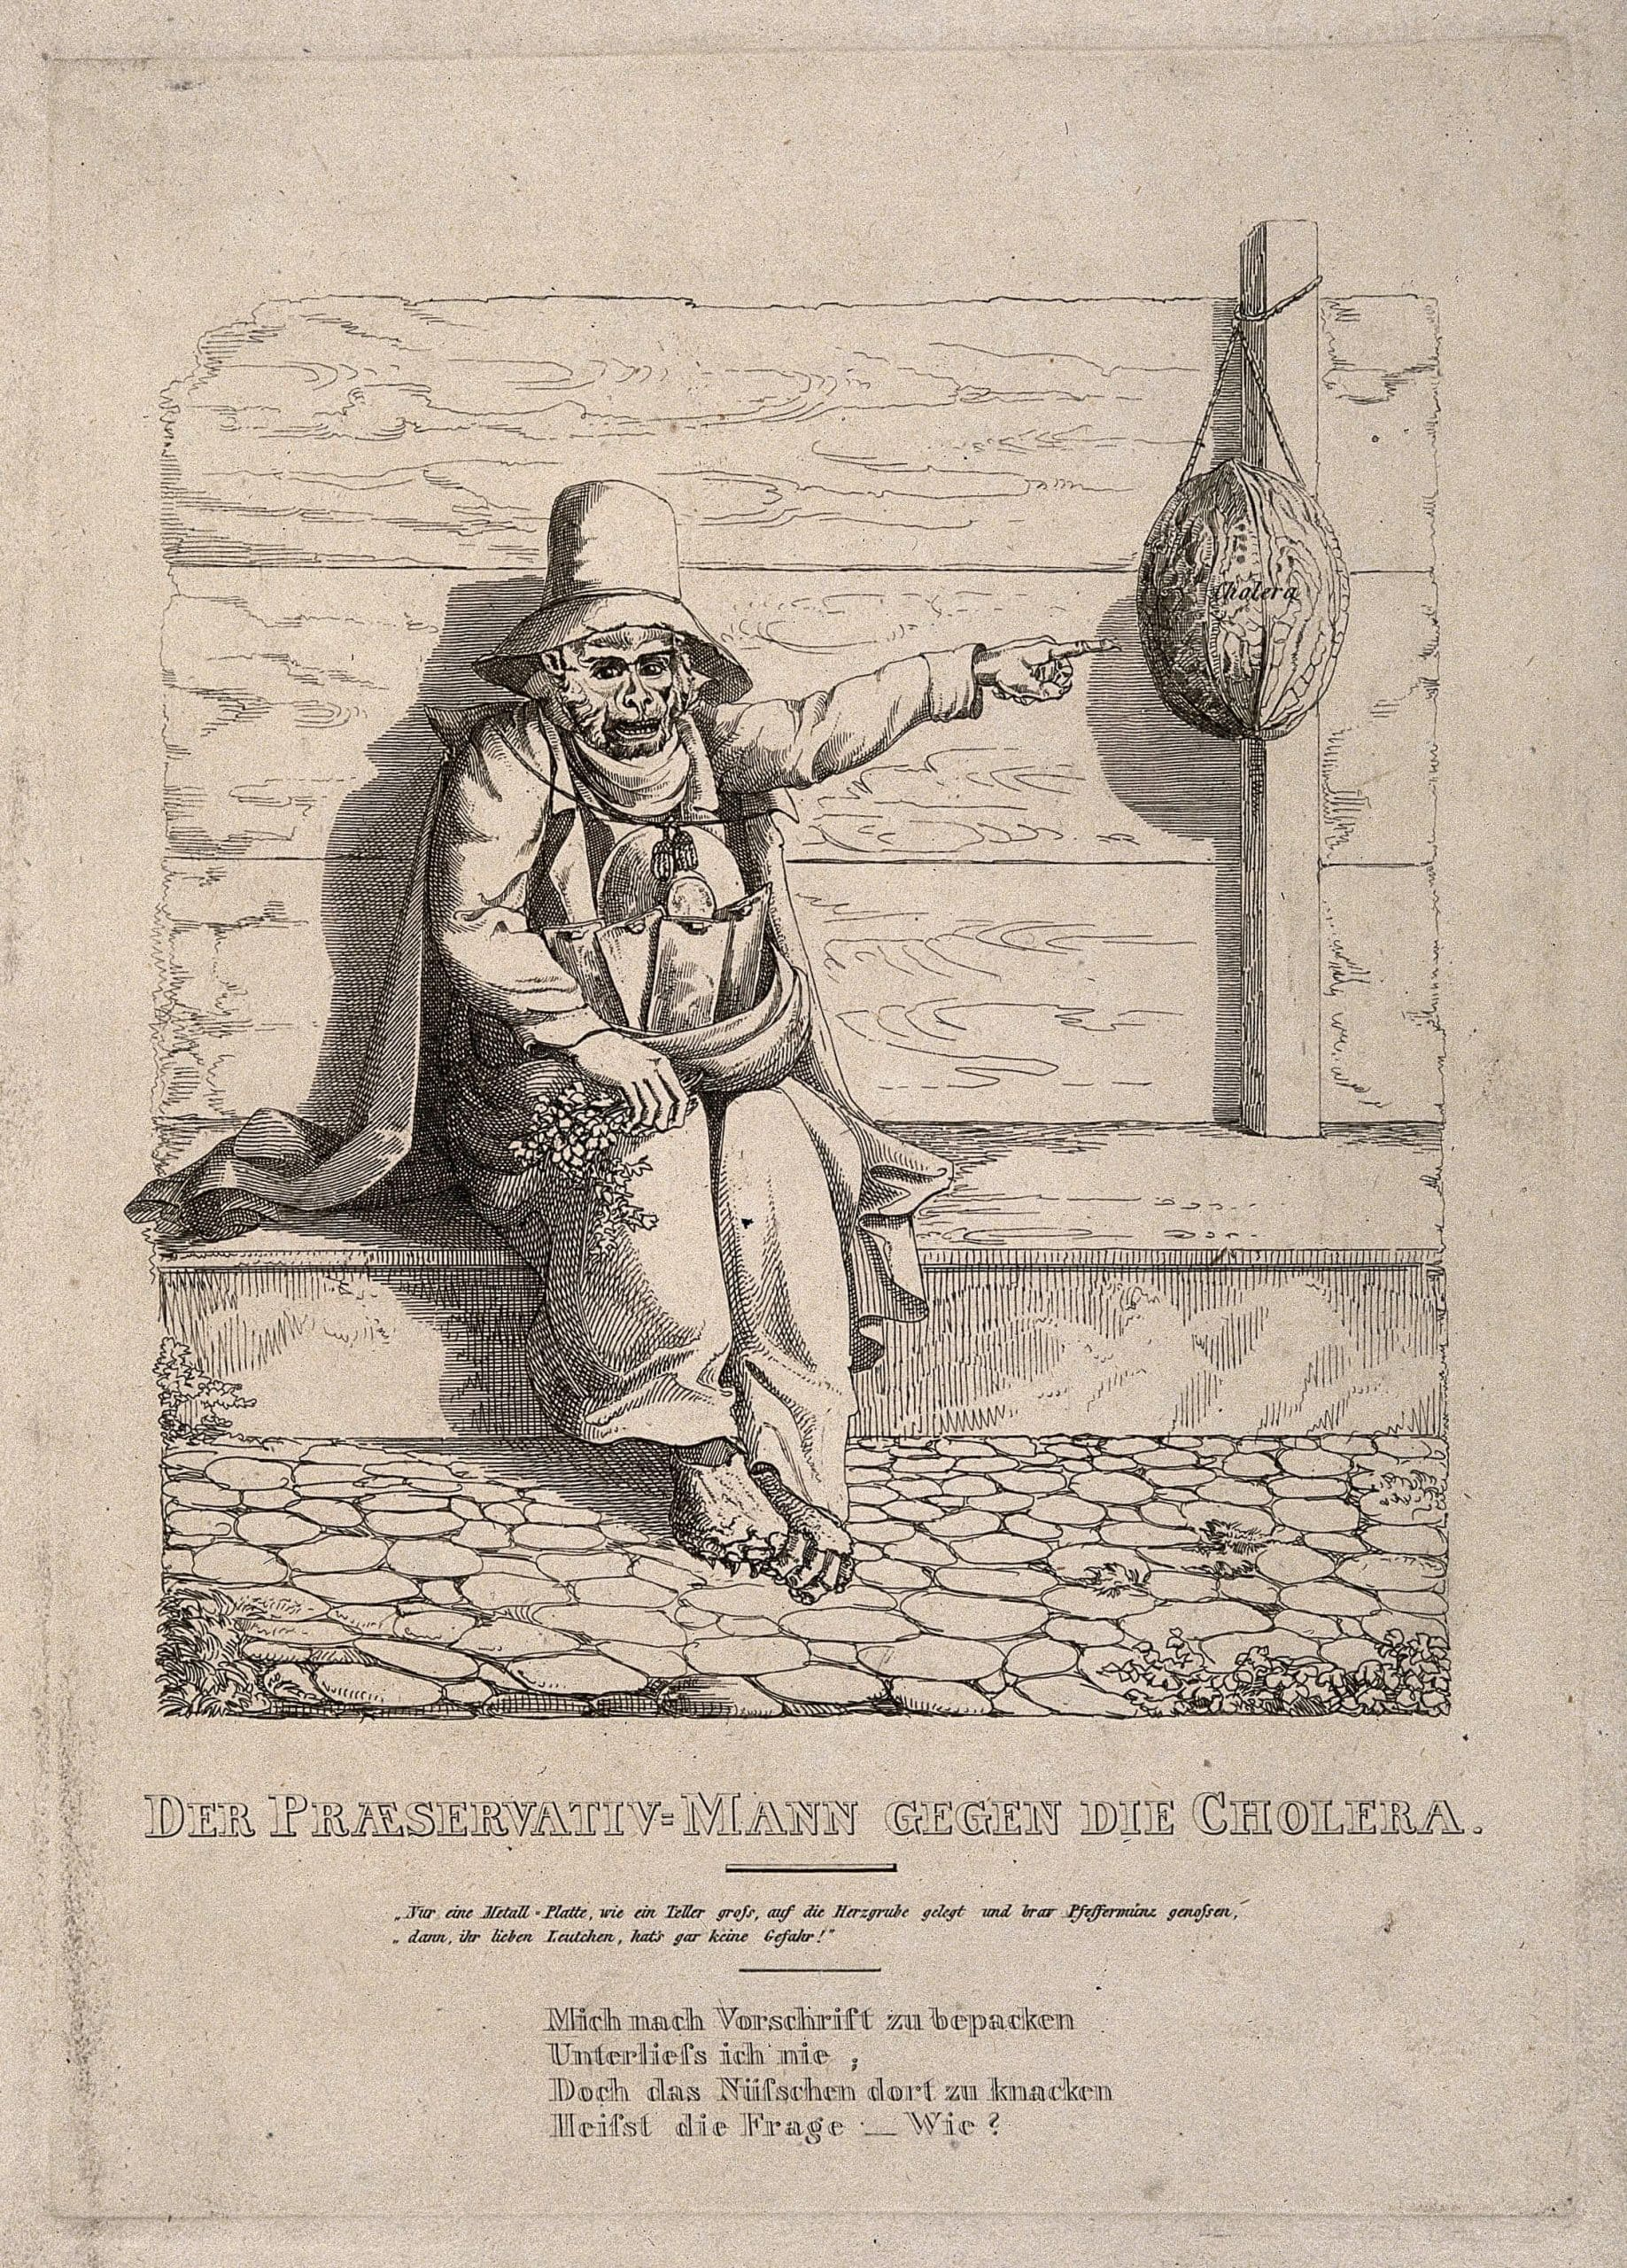 Cholera: A Panoply of Useless Remedies